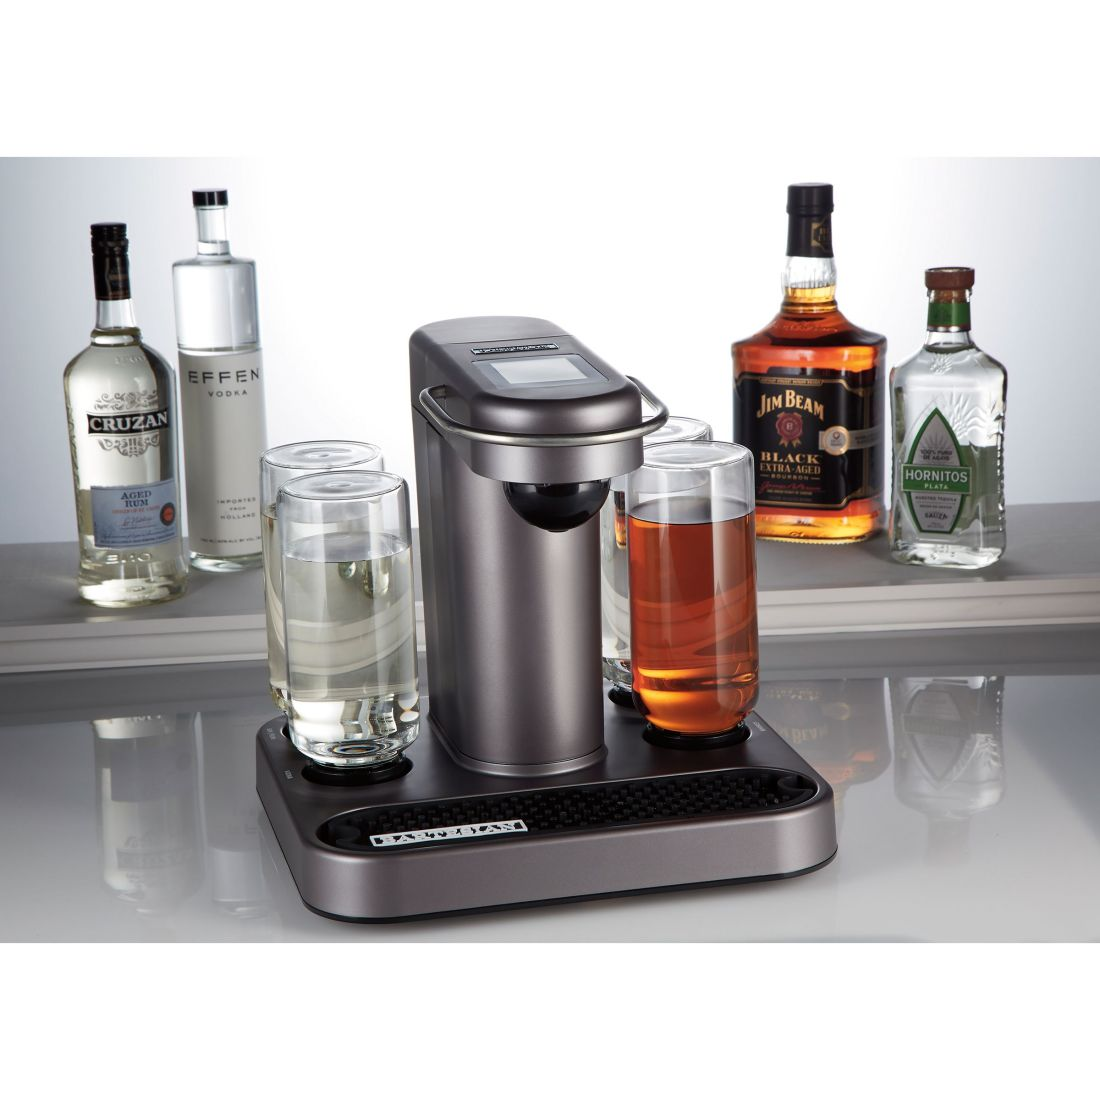 The picture shows the Bartesian and four bottles of alcohol placed behind it